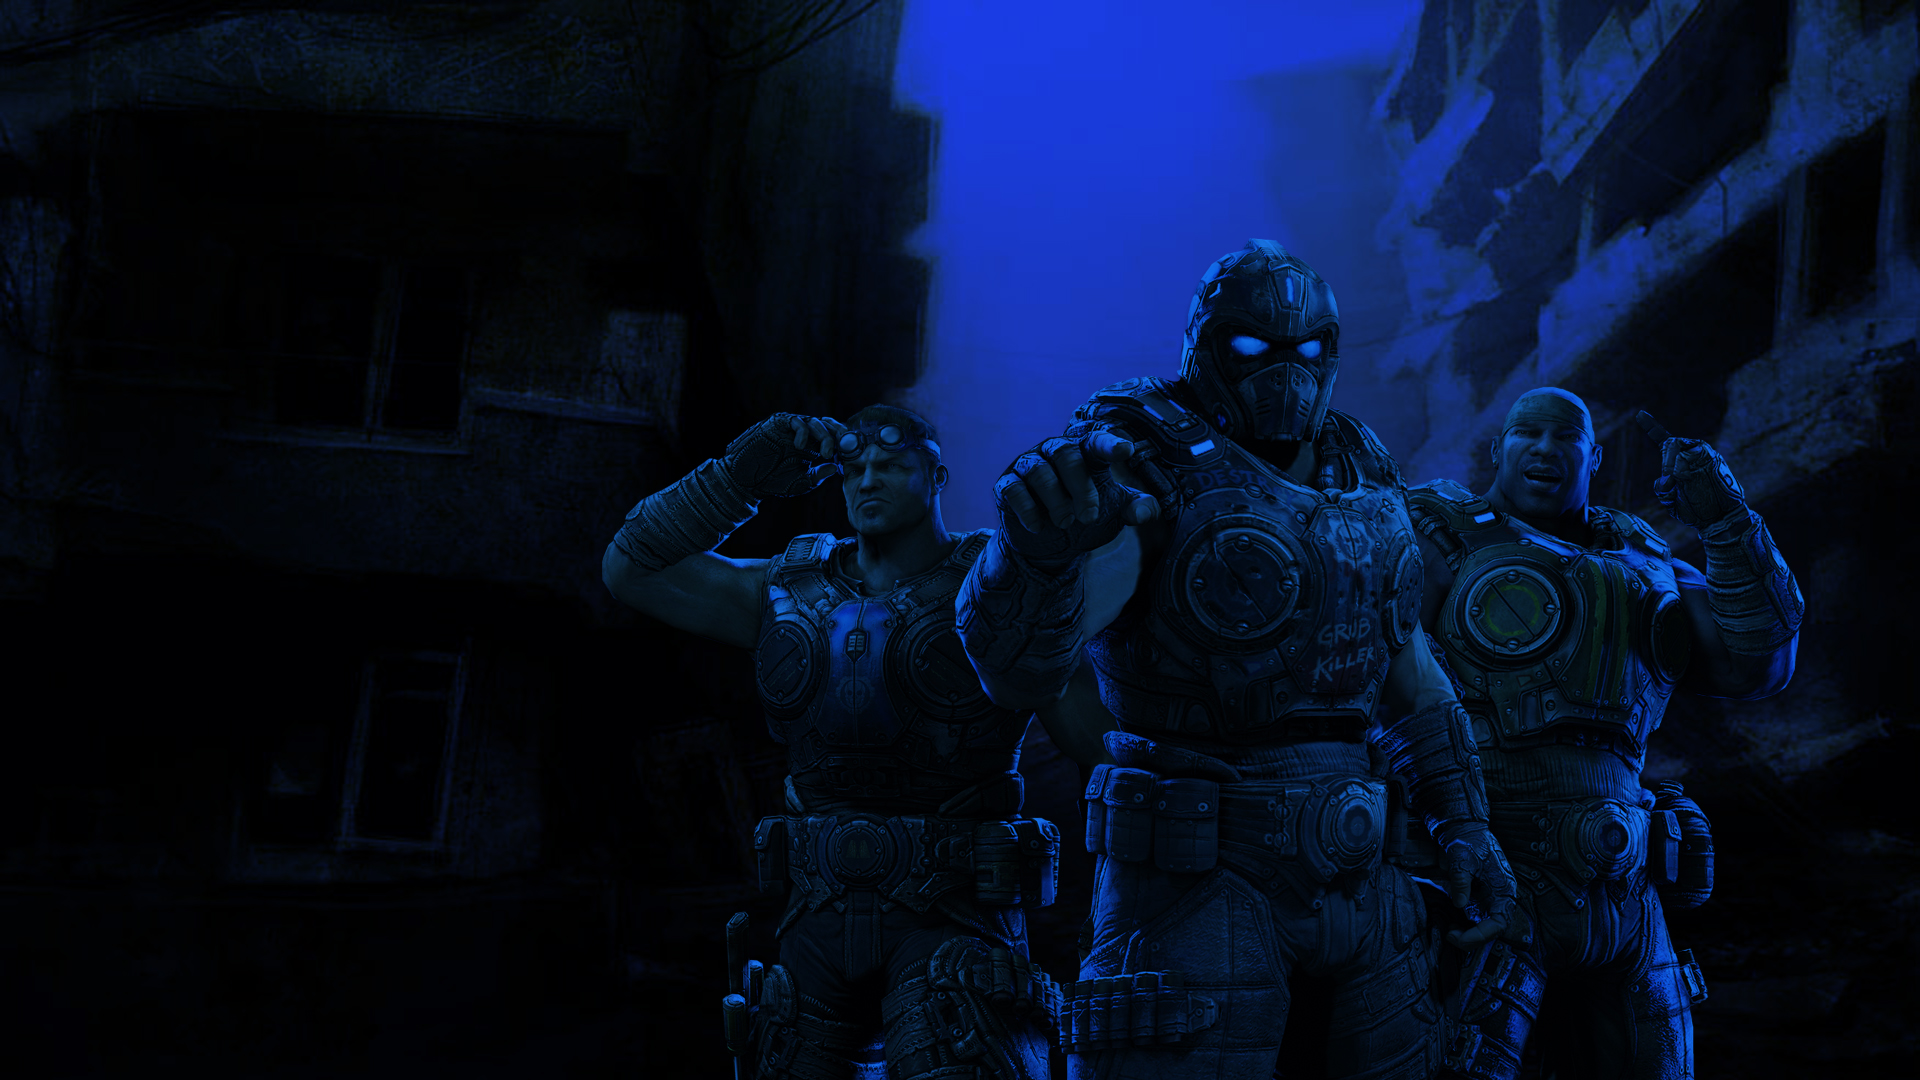 Gears Of War 3 Hd Wallpapers For Android: Gears Of War Wallpaper 1080p